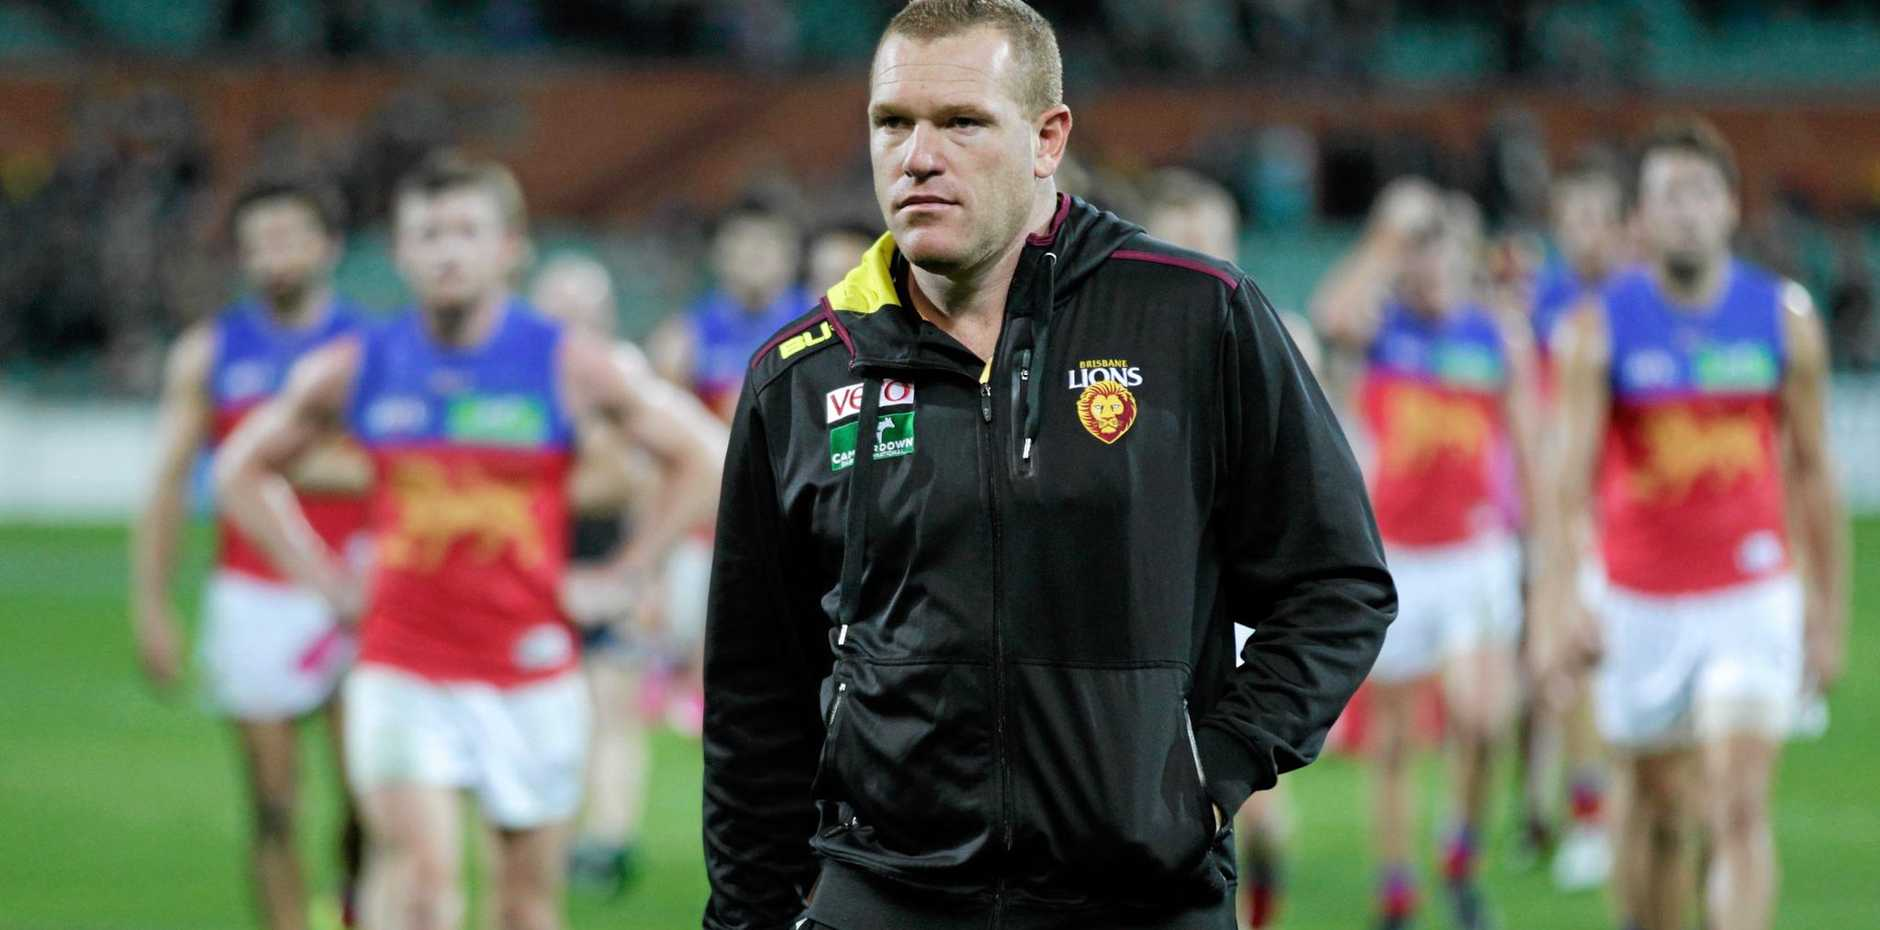 UNDER PRESSURE: Brisbane Lions coach Justin Leppitsch leads his players off after another defeat this year.